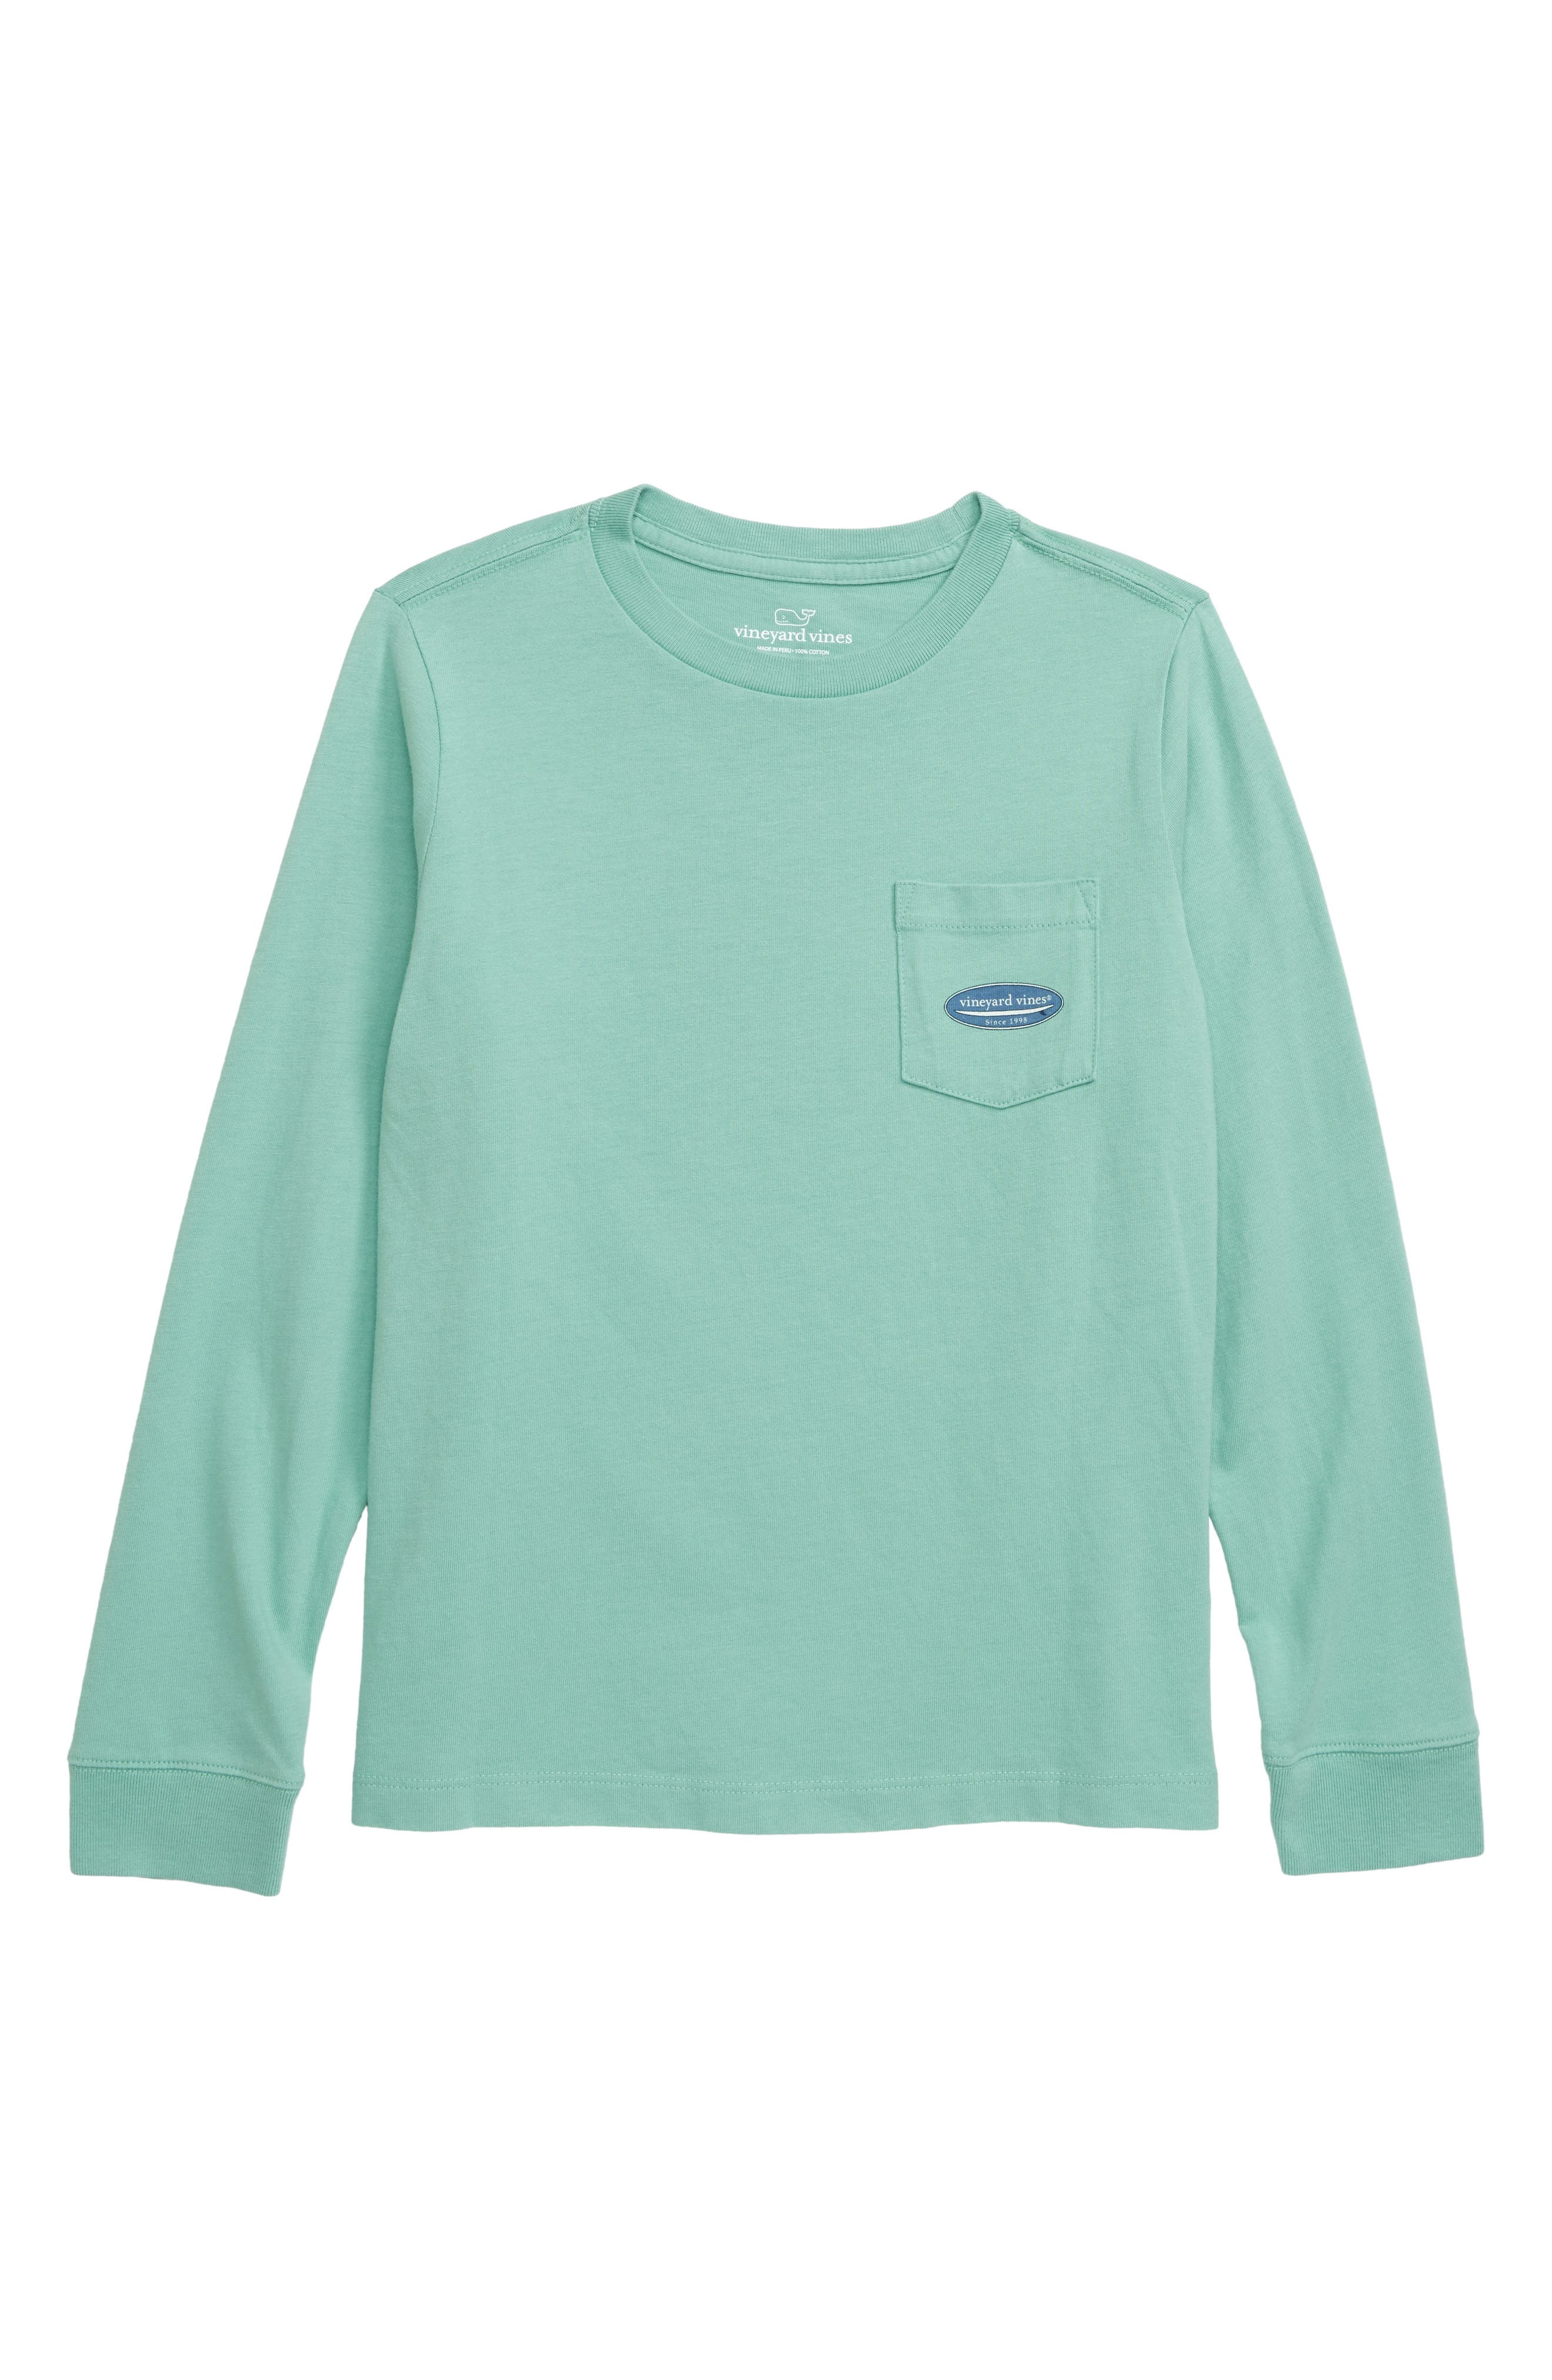 Boys Vineyard Vines Surf Logo Pocket TShirt Size M (1214)  Green